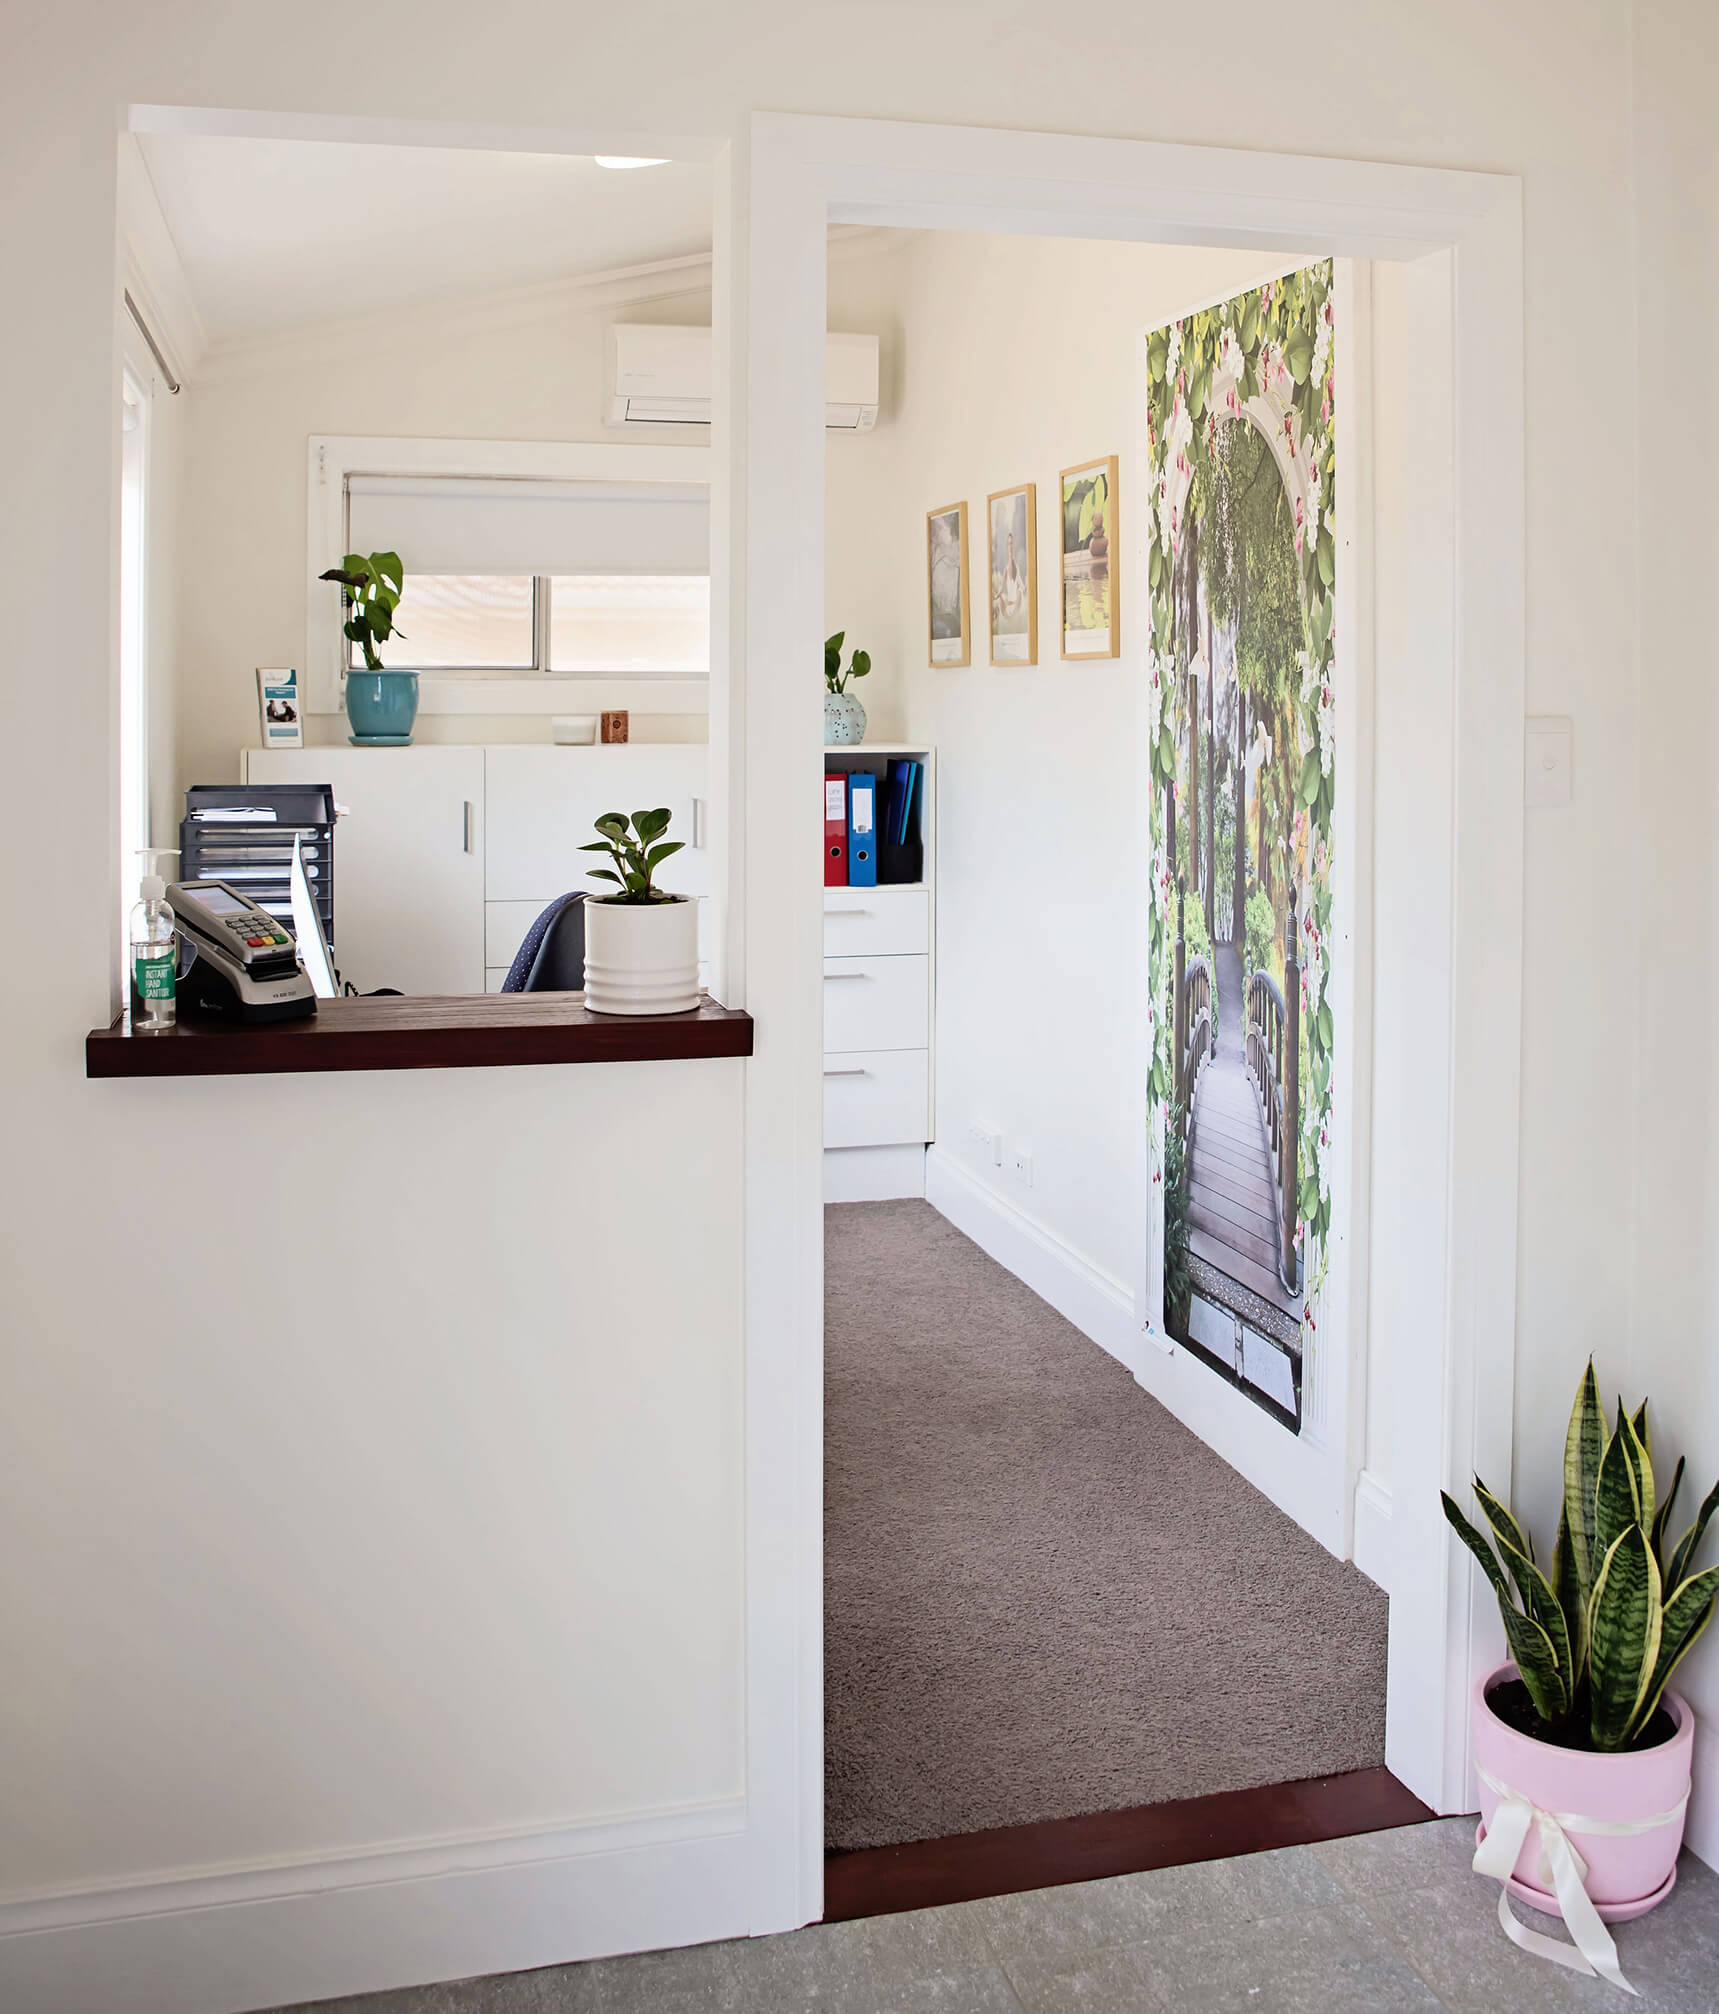 The reception at Sevens Creek Psychology in Euroa, showing artwork on the wall and a pot plant